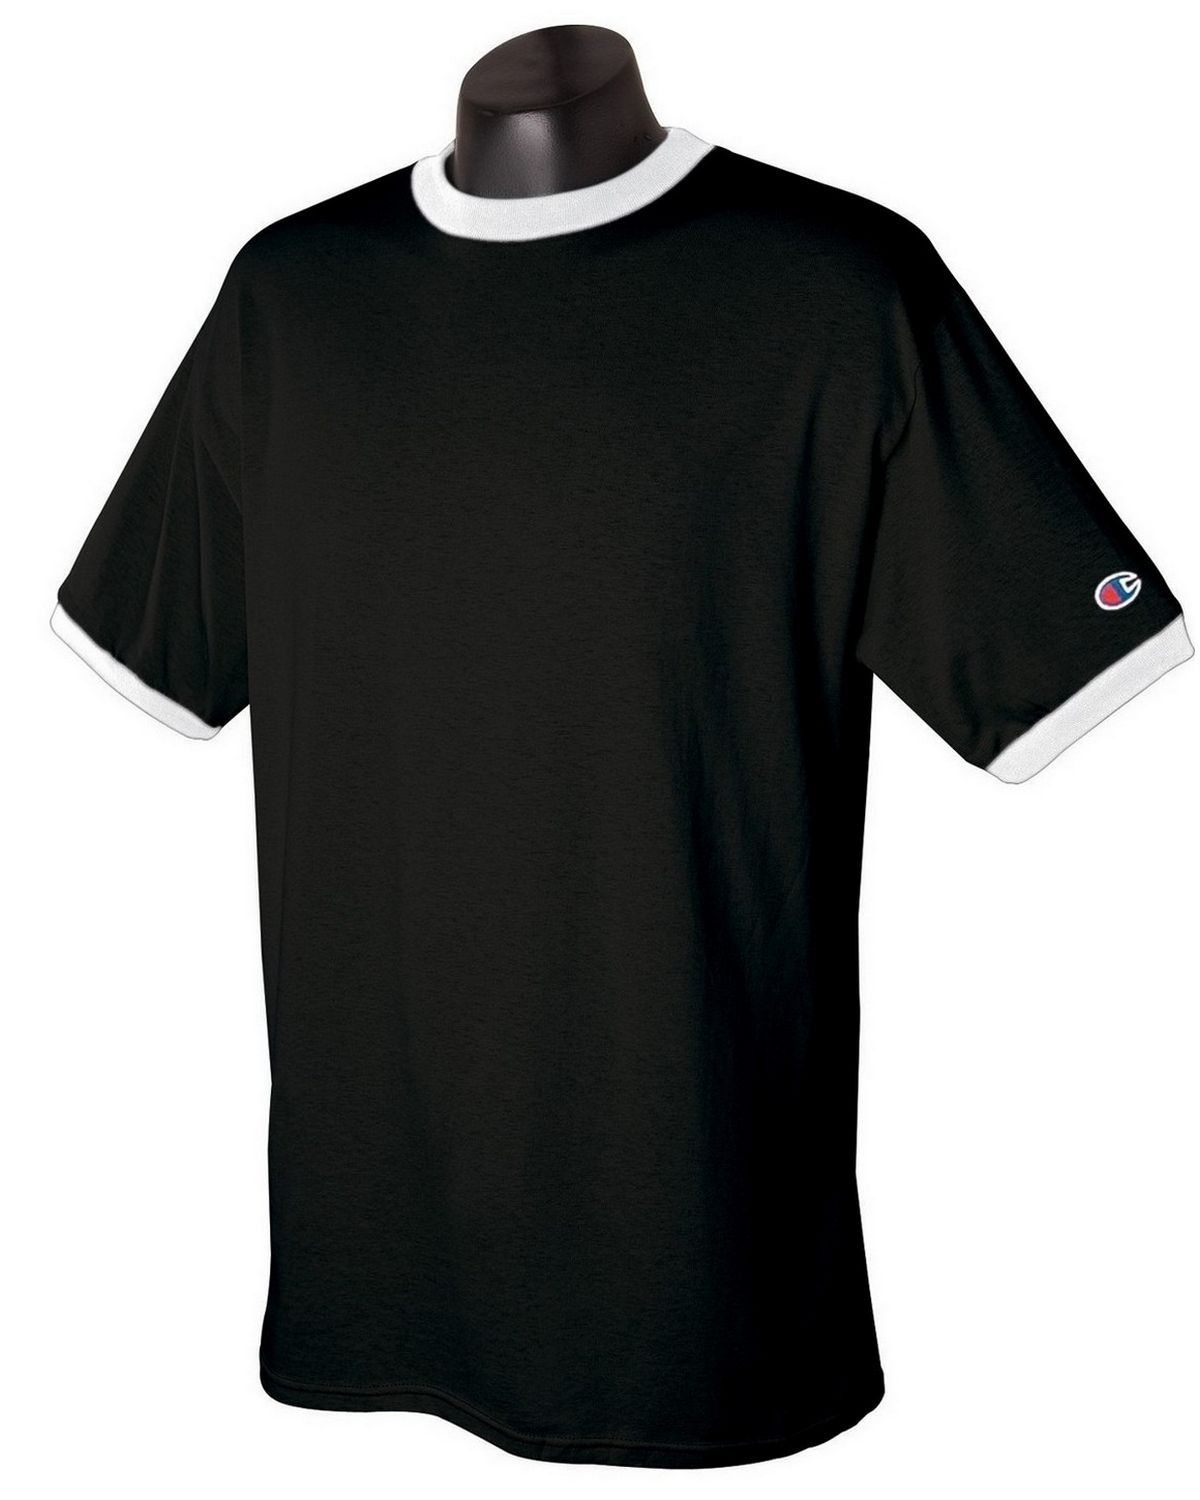 Champion T1396 Cotton Ringer T Shirt - White/Navy - XL T1396